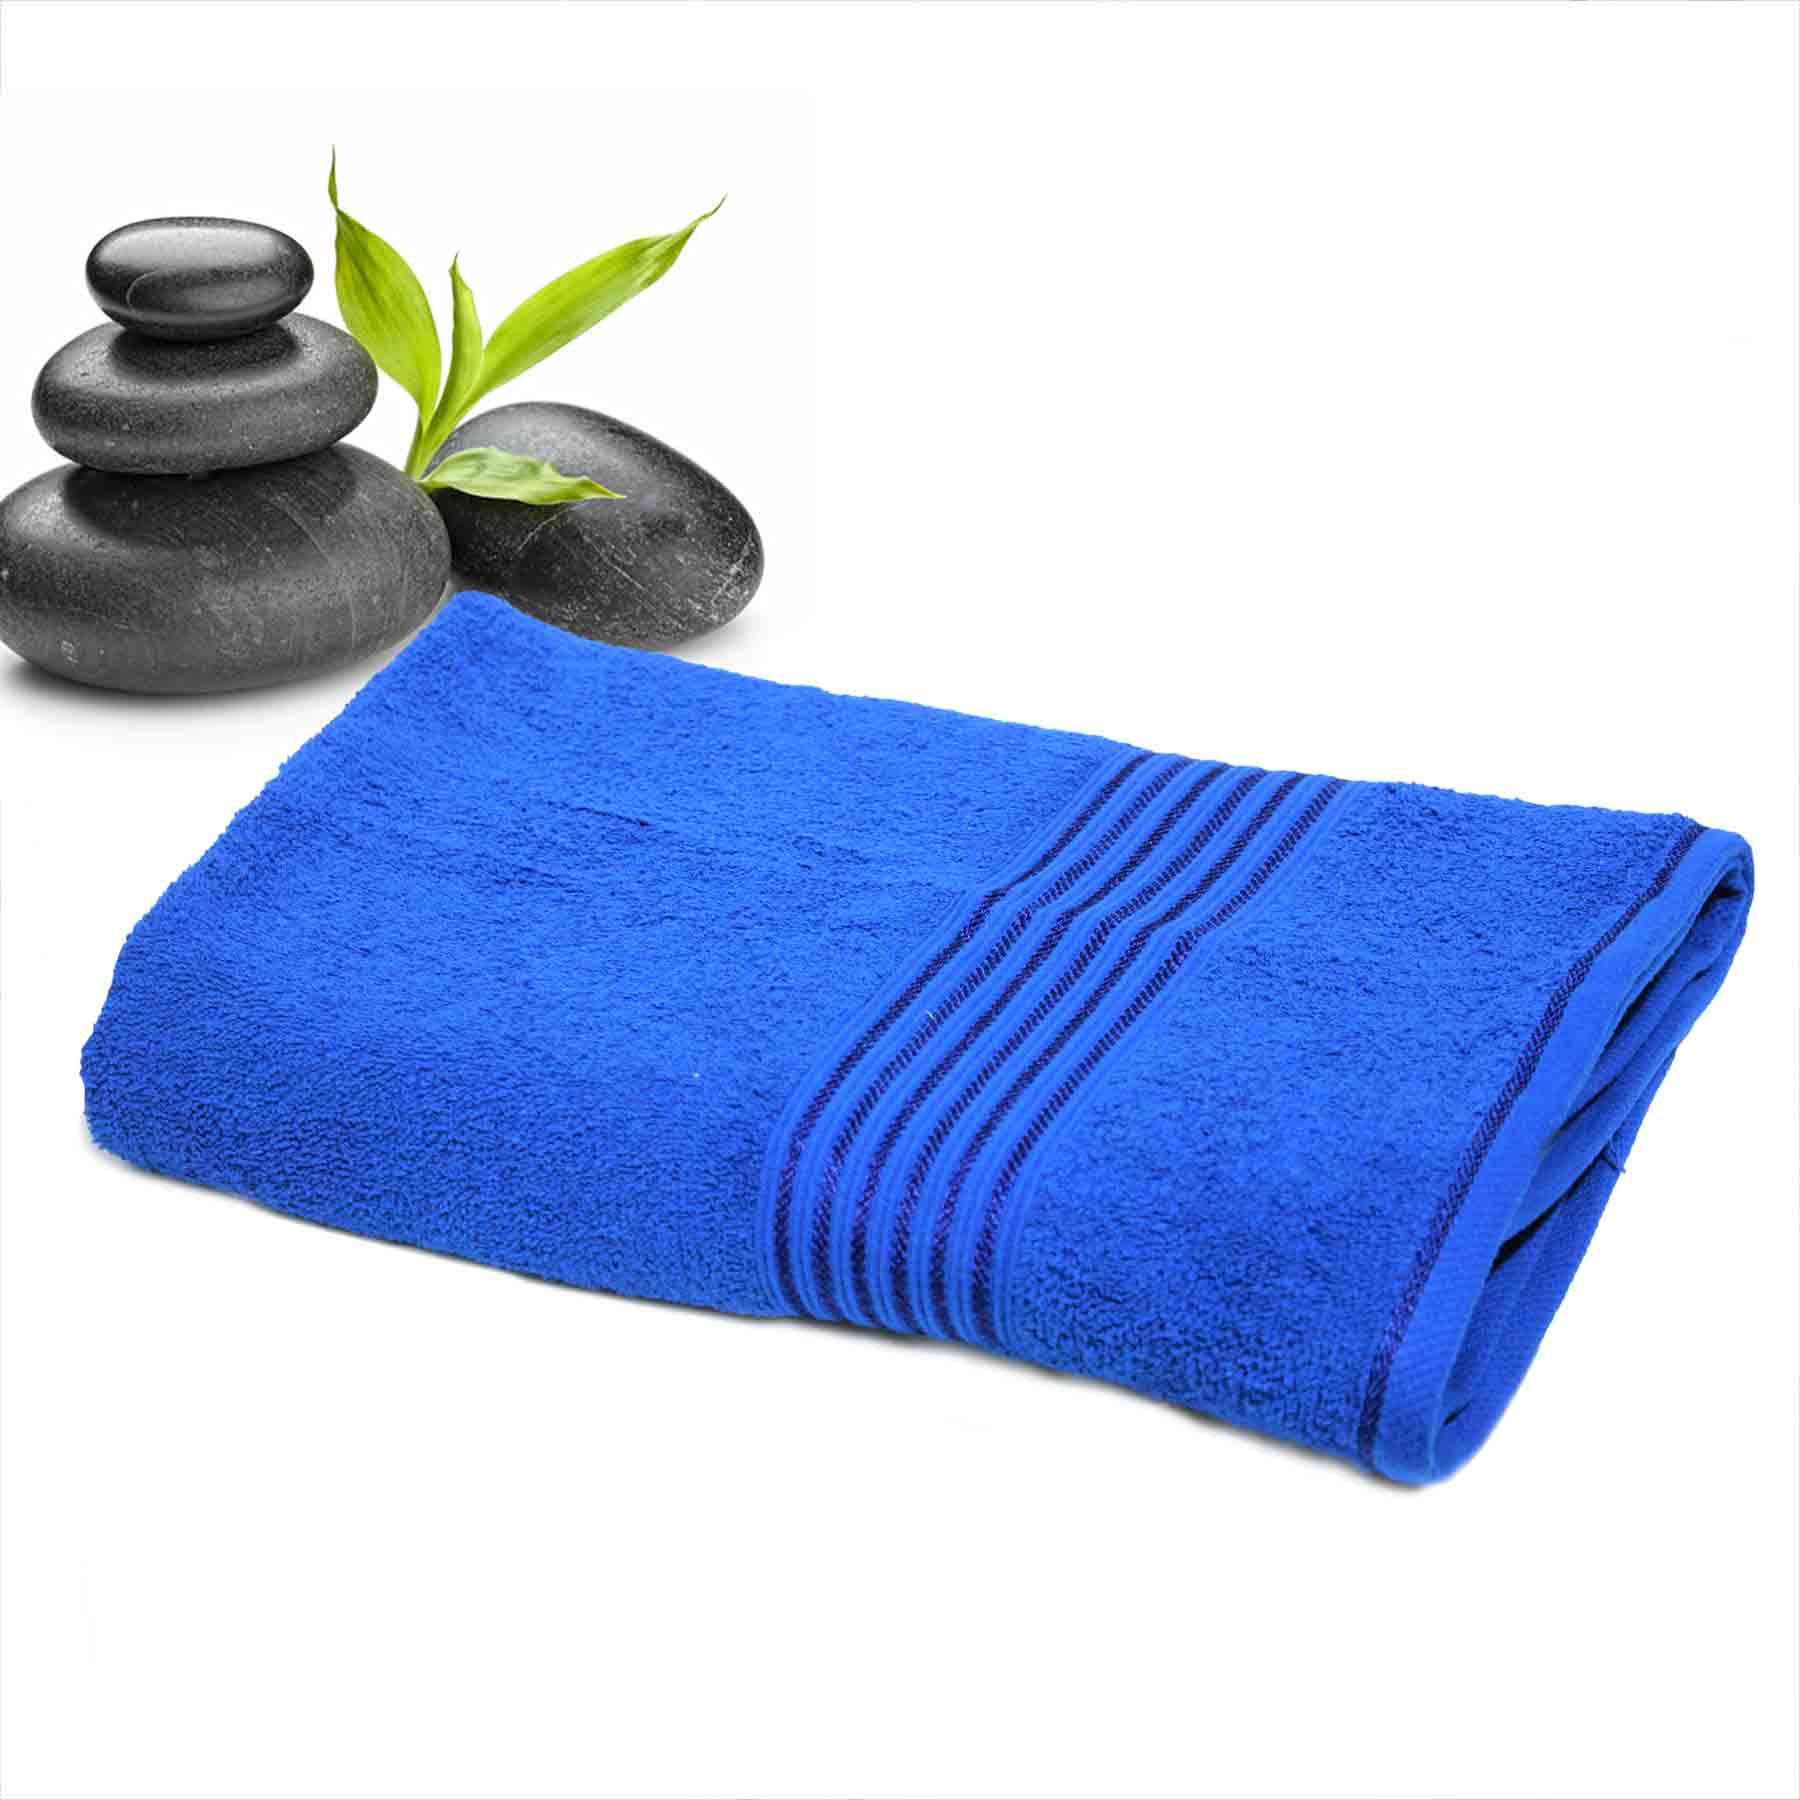 DIVINE CASA Single Cotton Bath Towel Blue (Ladies)